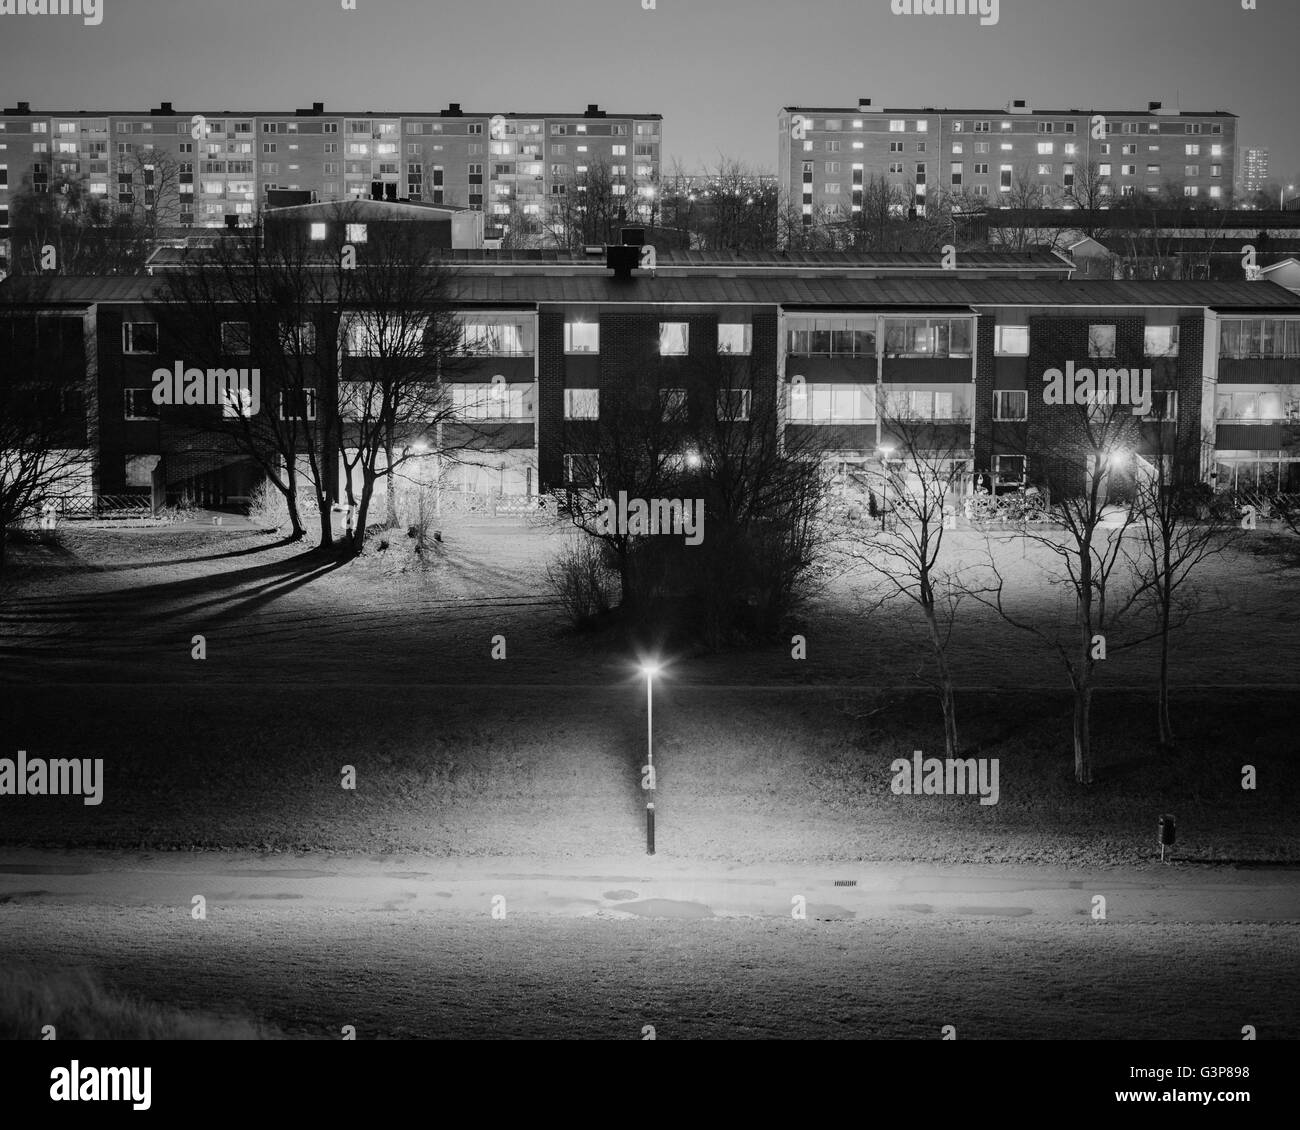 Sweden, Skane, Malmo, Holma, Residential district at night - Stock Image